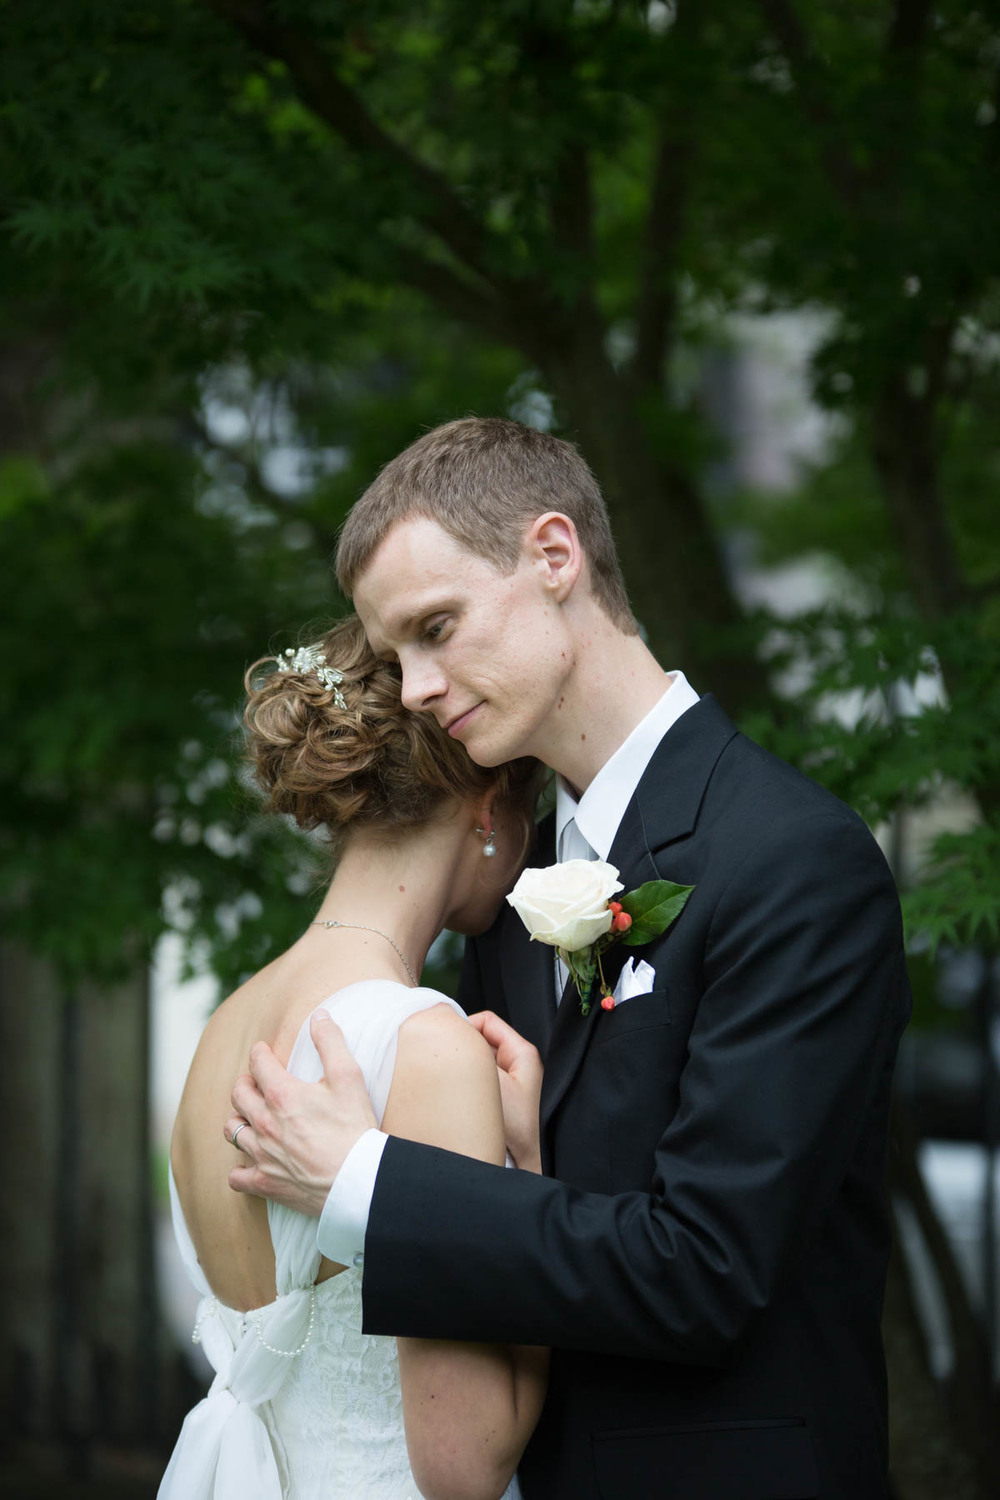 Aliece and david wedding-66.jpg